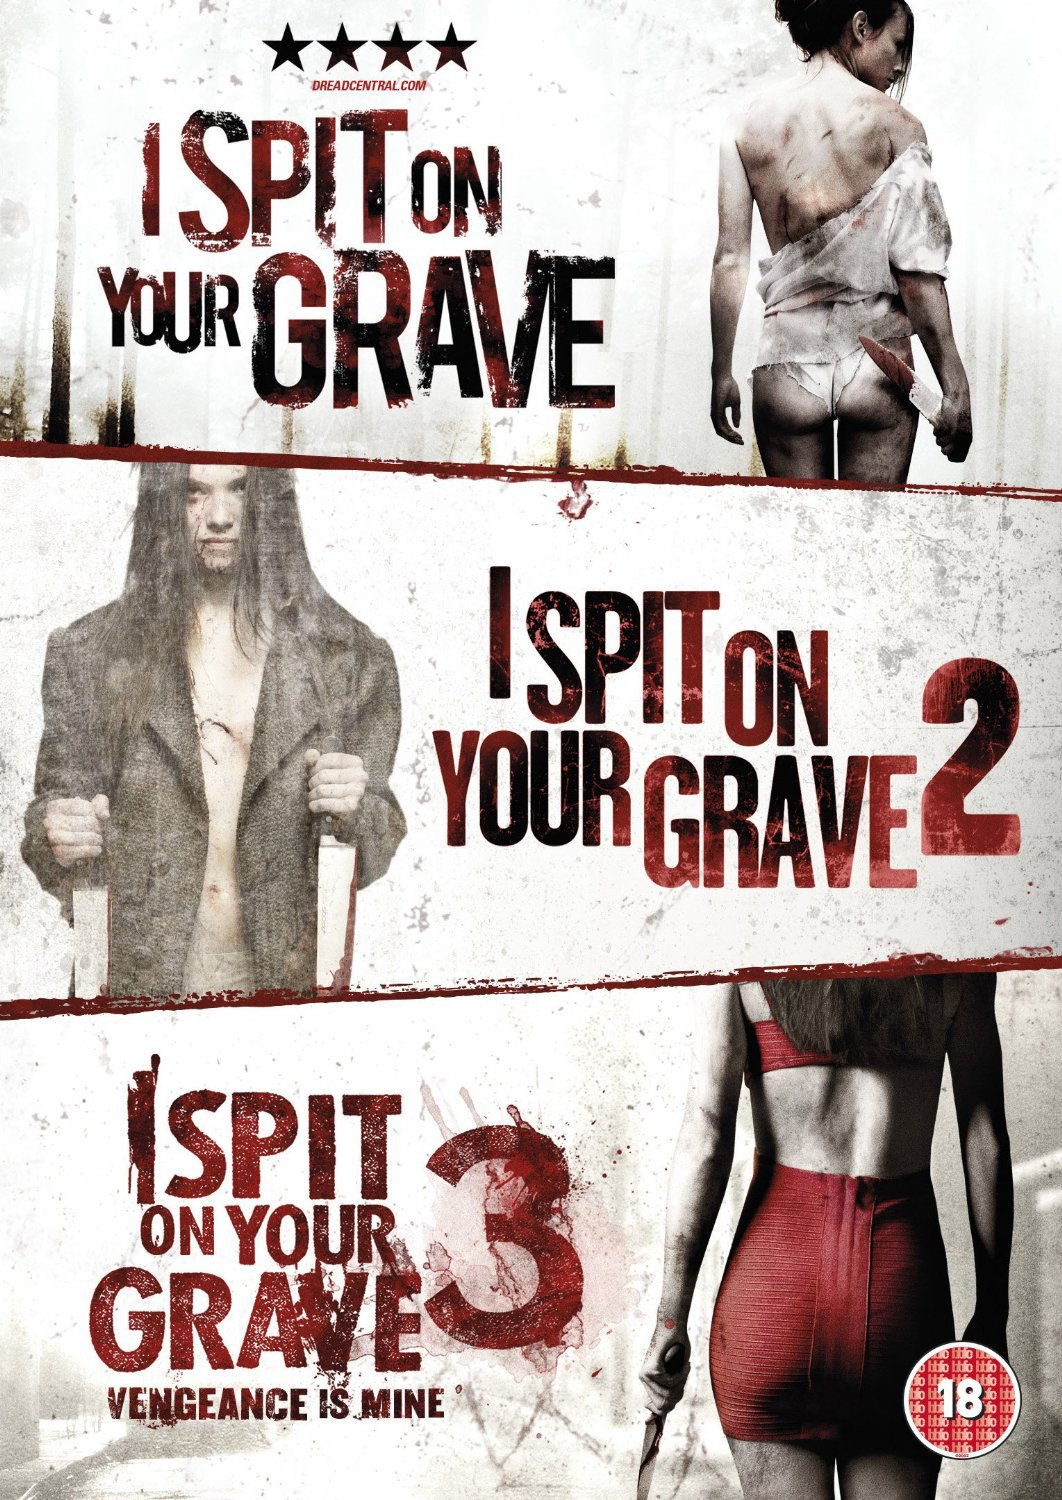 I Spit On Your Grave I Spit On Your Grave 2 I Spit On Your Grave3 Dvd Buy Online In China At China Desertcart Com Productid 54510161